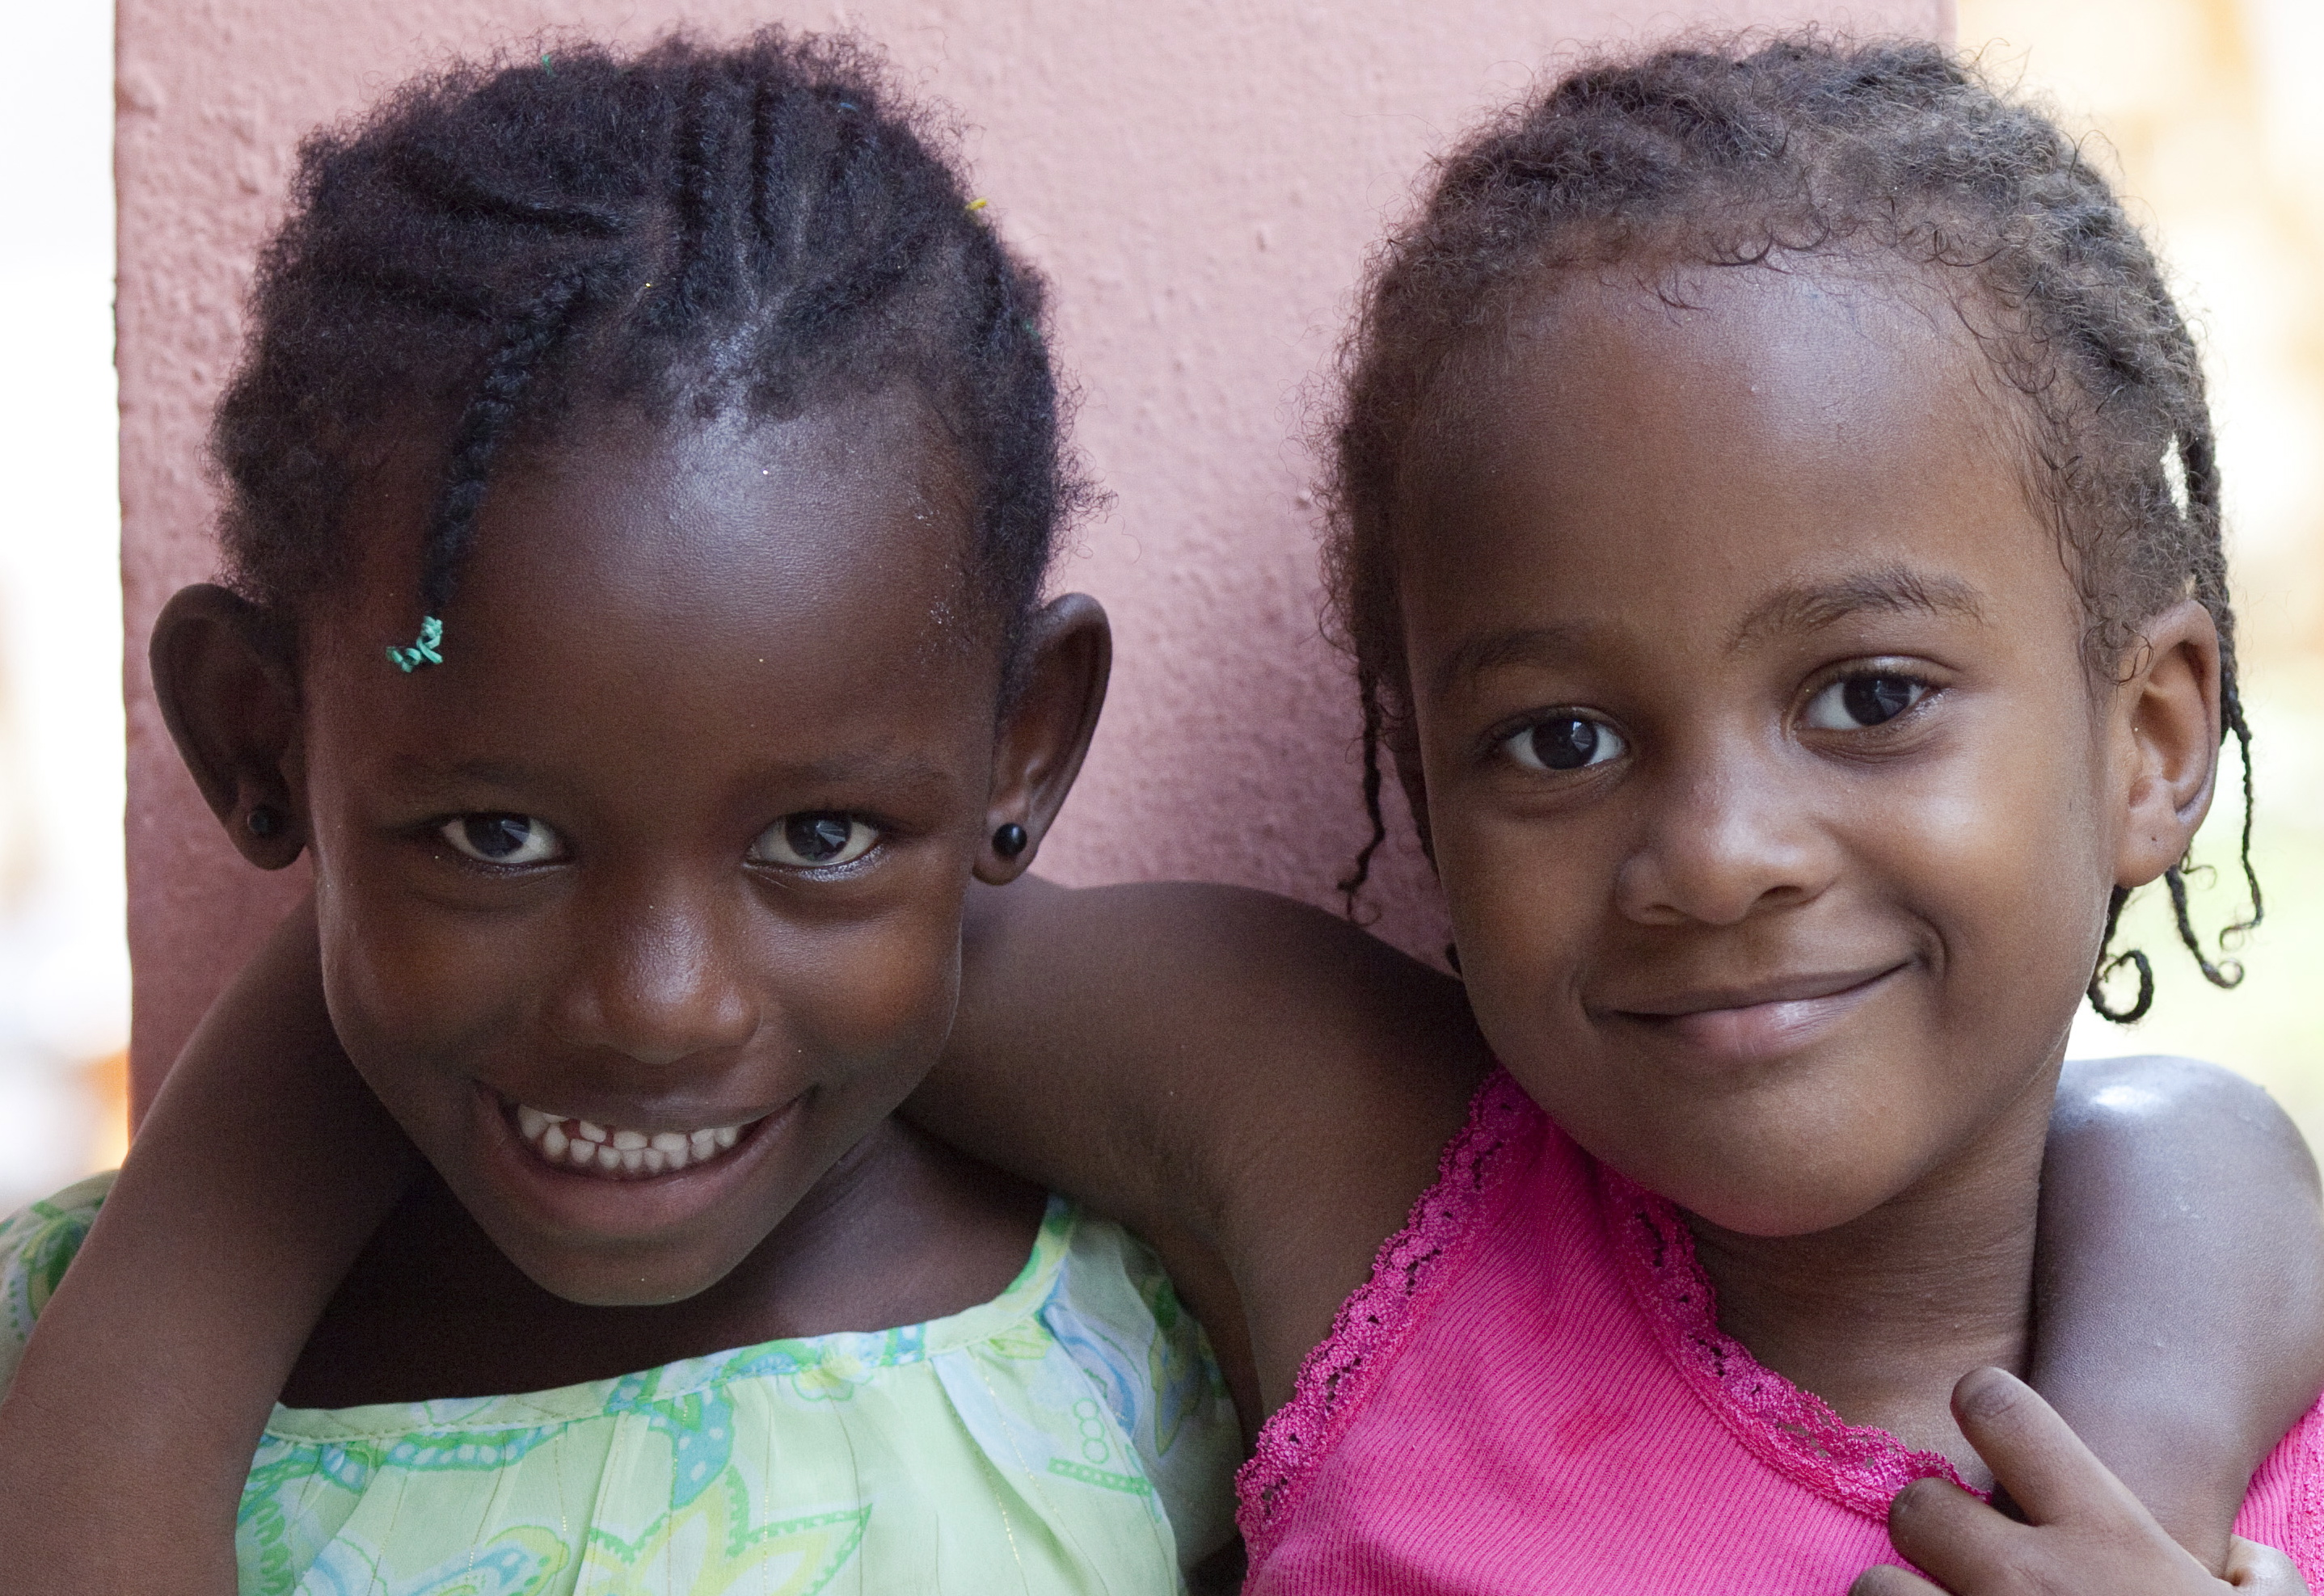 ... holiday gift, please consider giving the gift of hope by supporting nutritious meals and school scholarships for children in Port-au-Prince, Haiti.